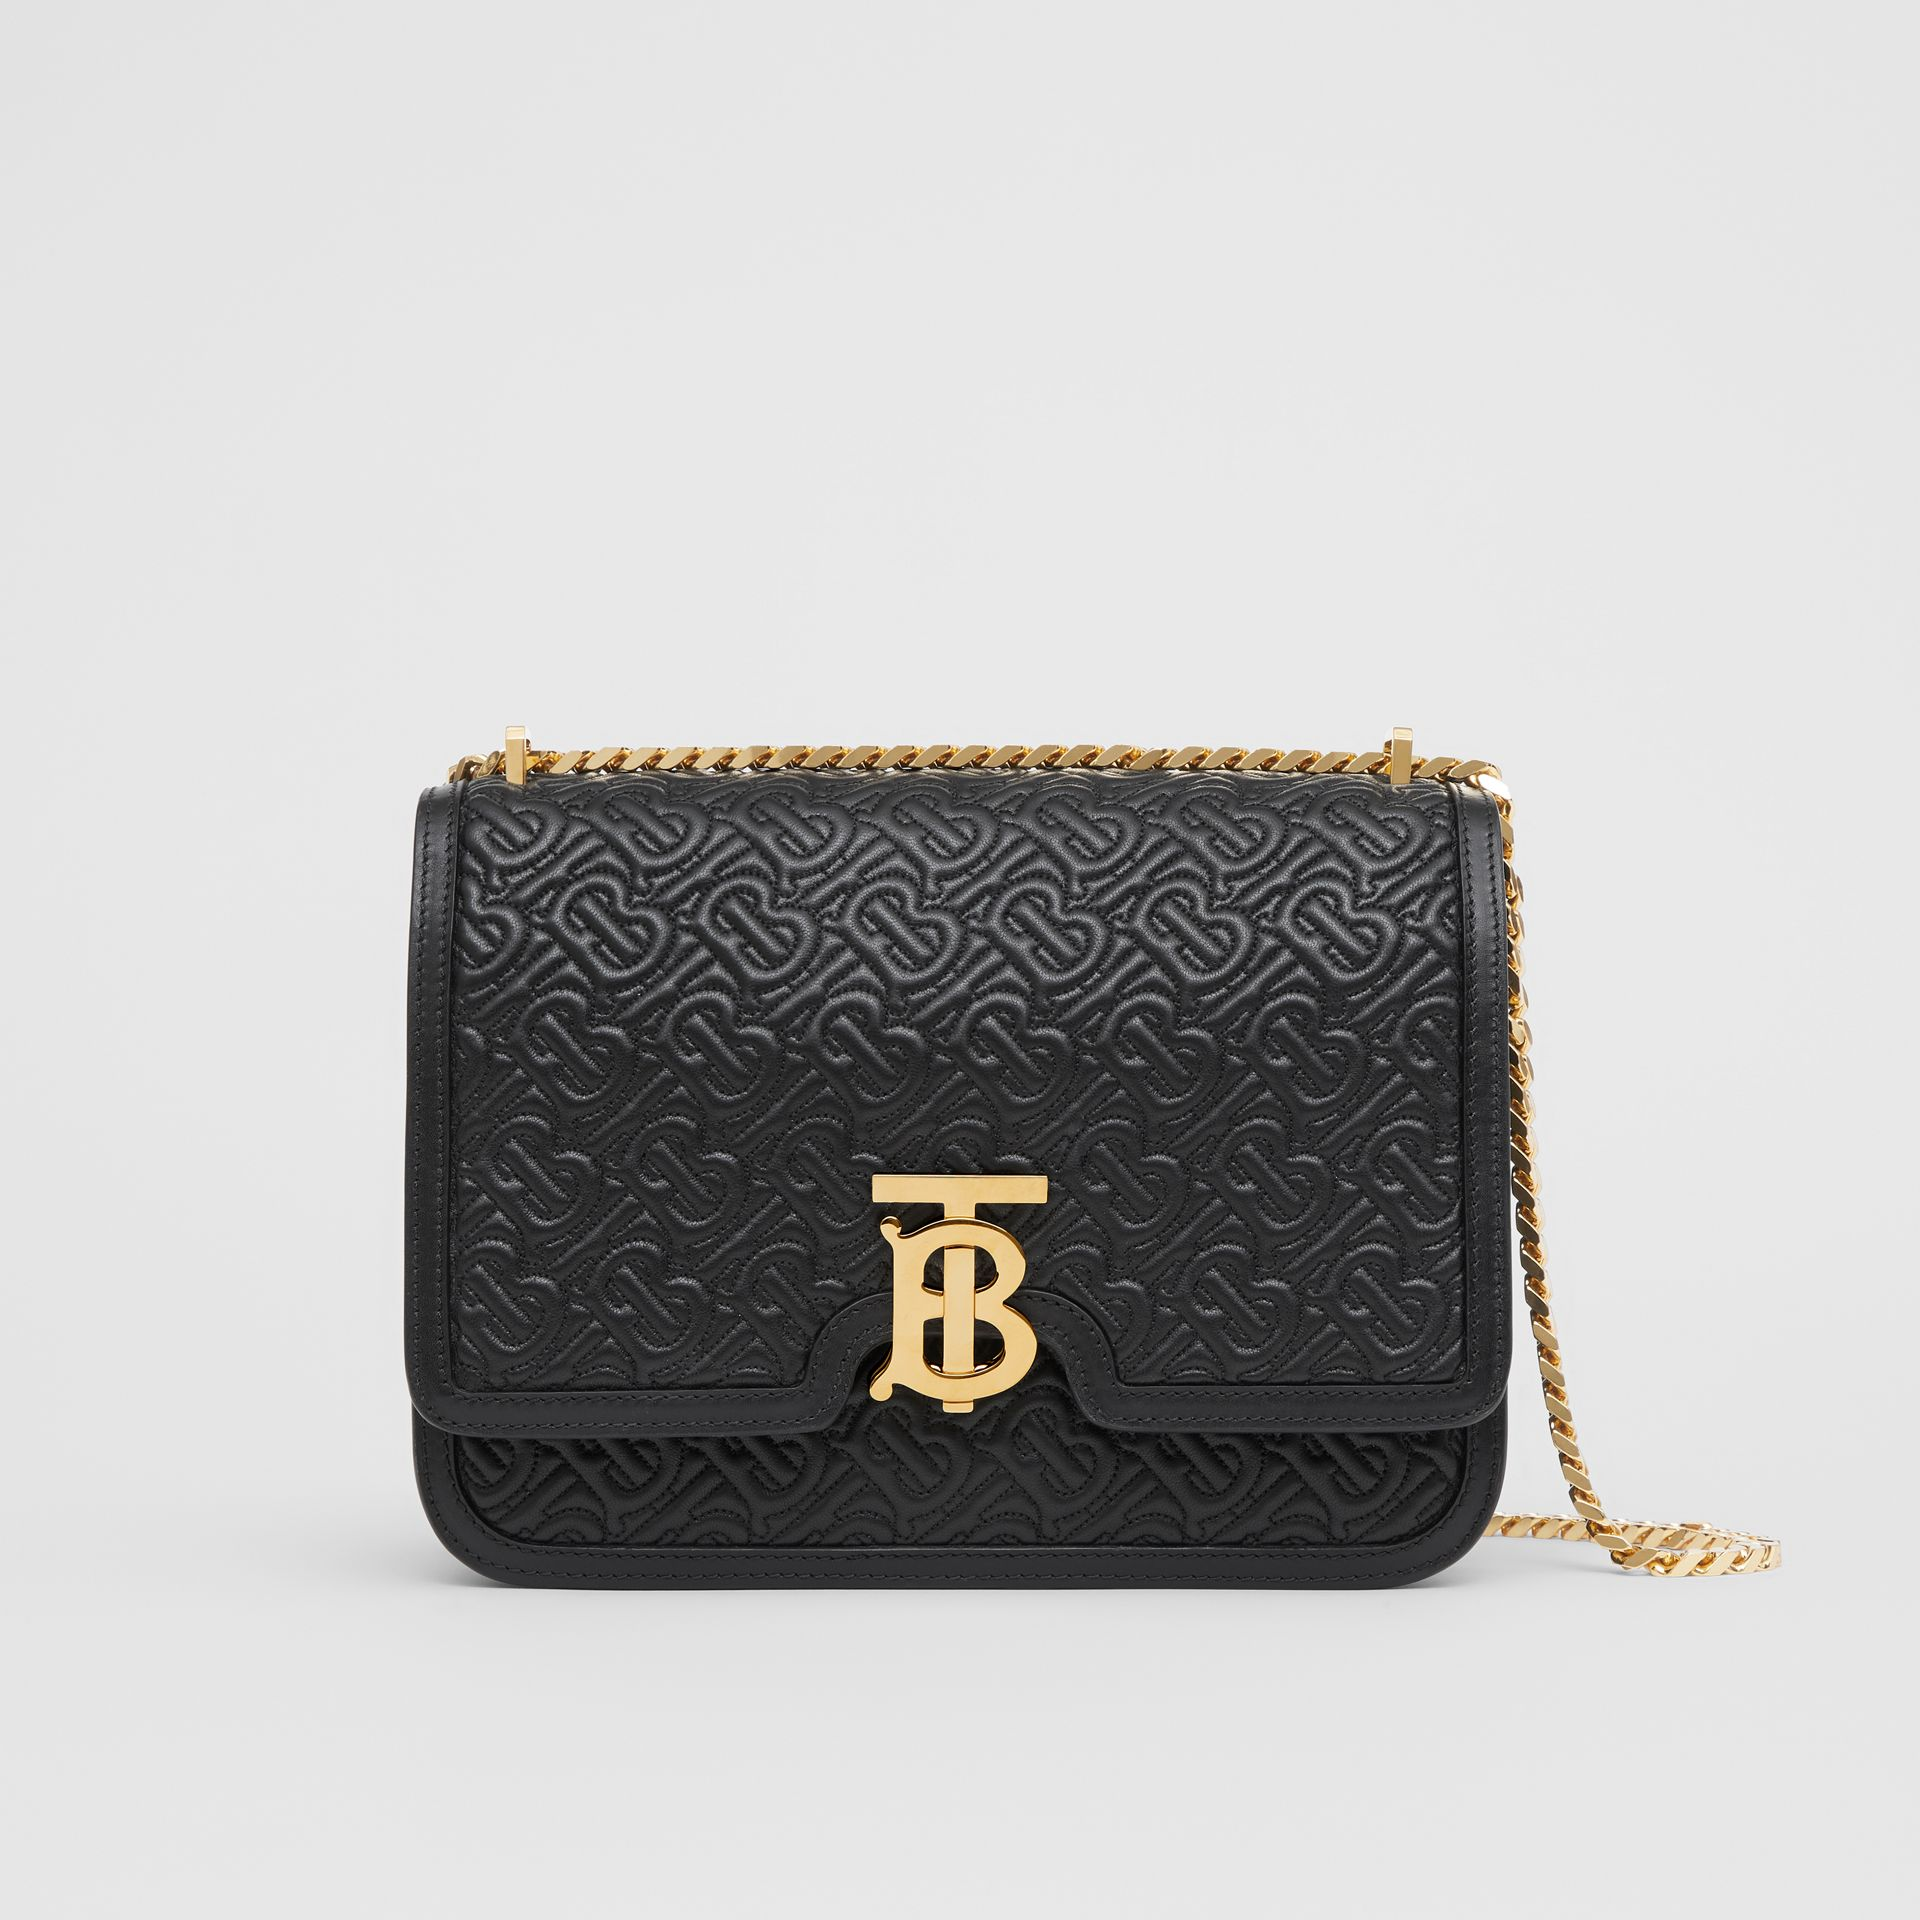 Medium Quilted Monogram Lambskin TB Bag in Black - Women | Burberry Singapore - gallery image 0